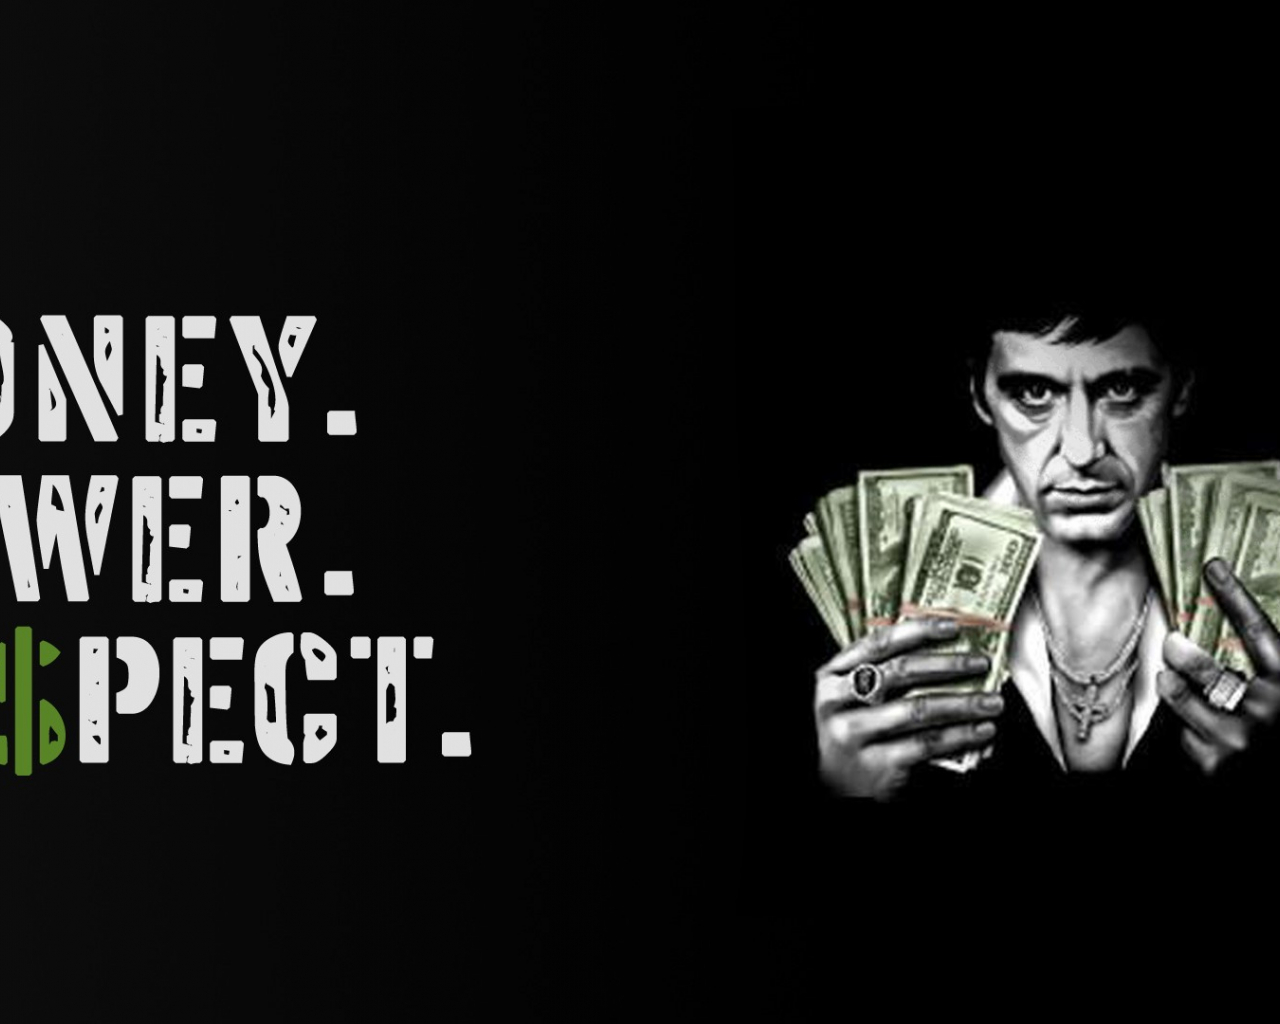 money drugs quotes Scarface [1920x1080 ...